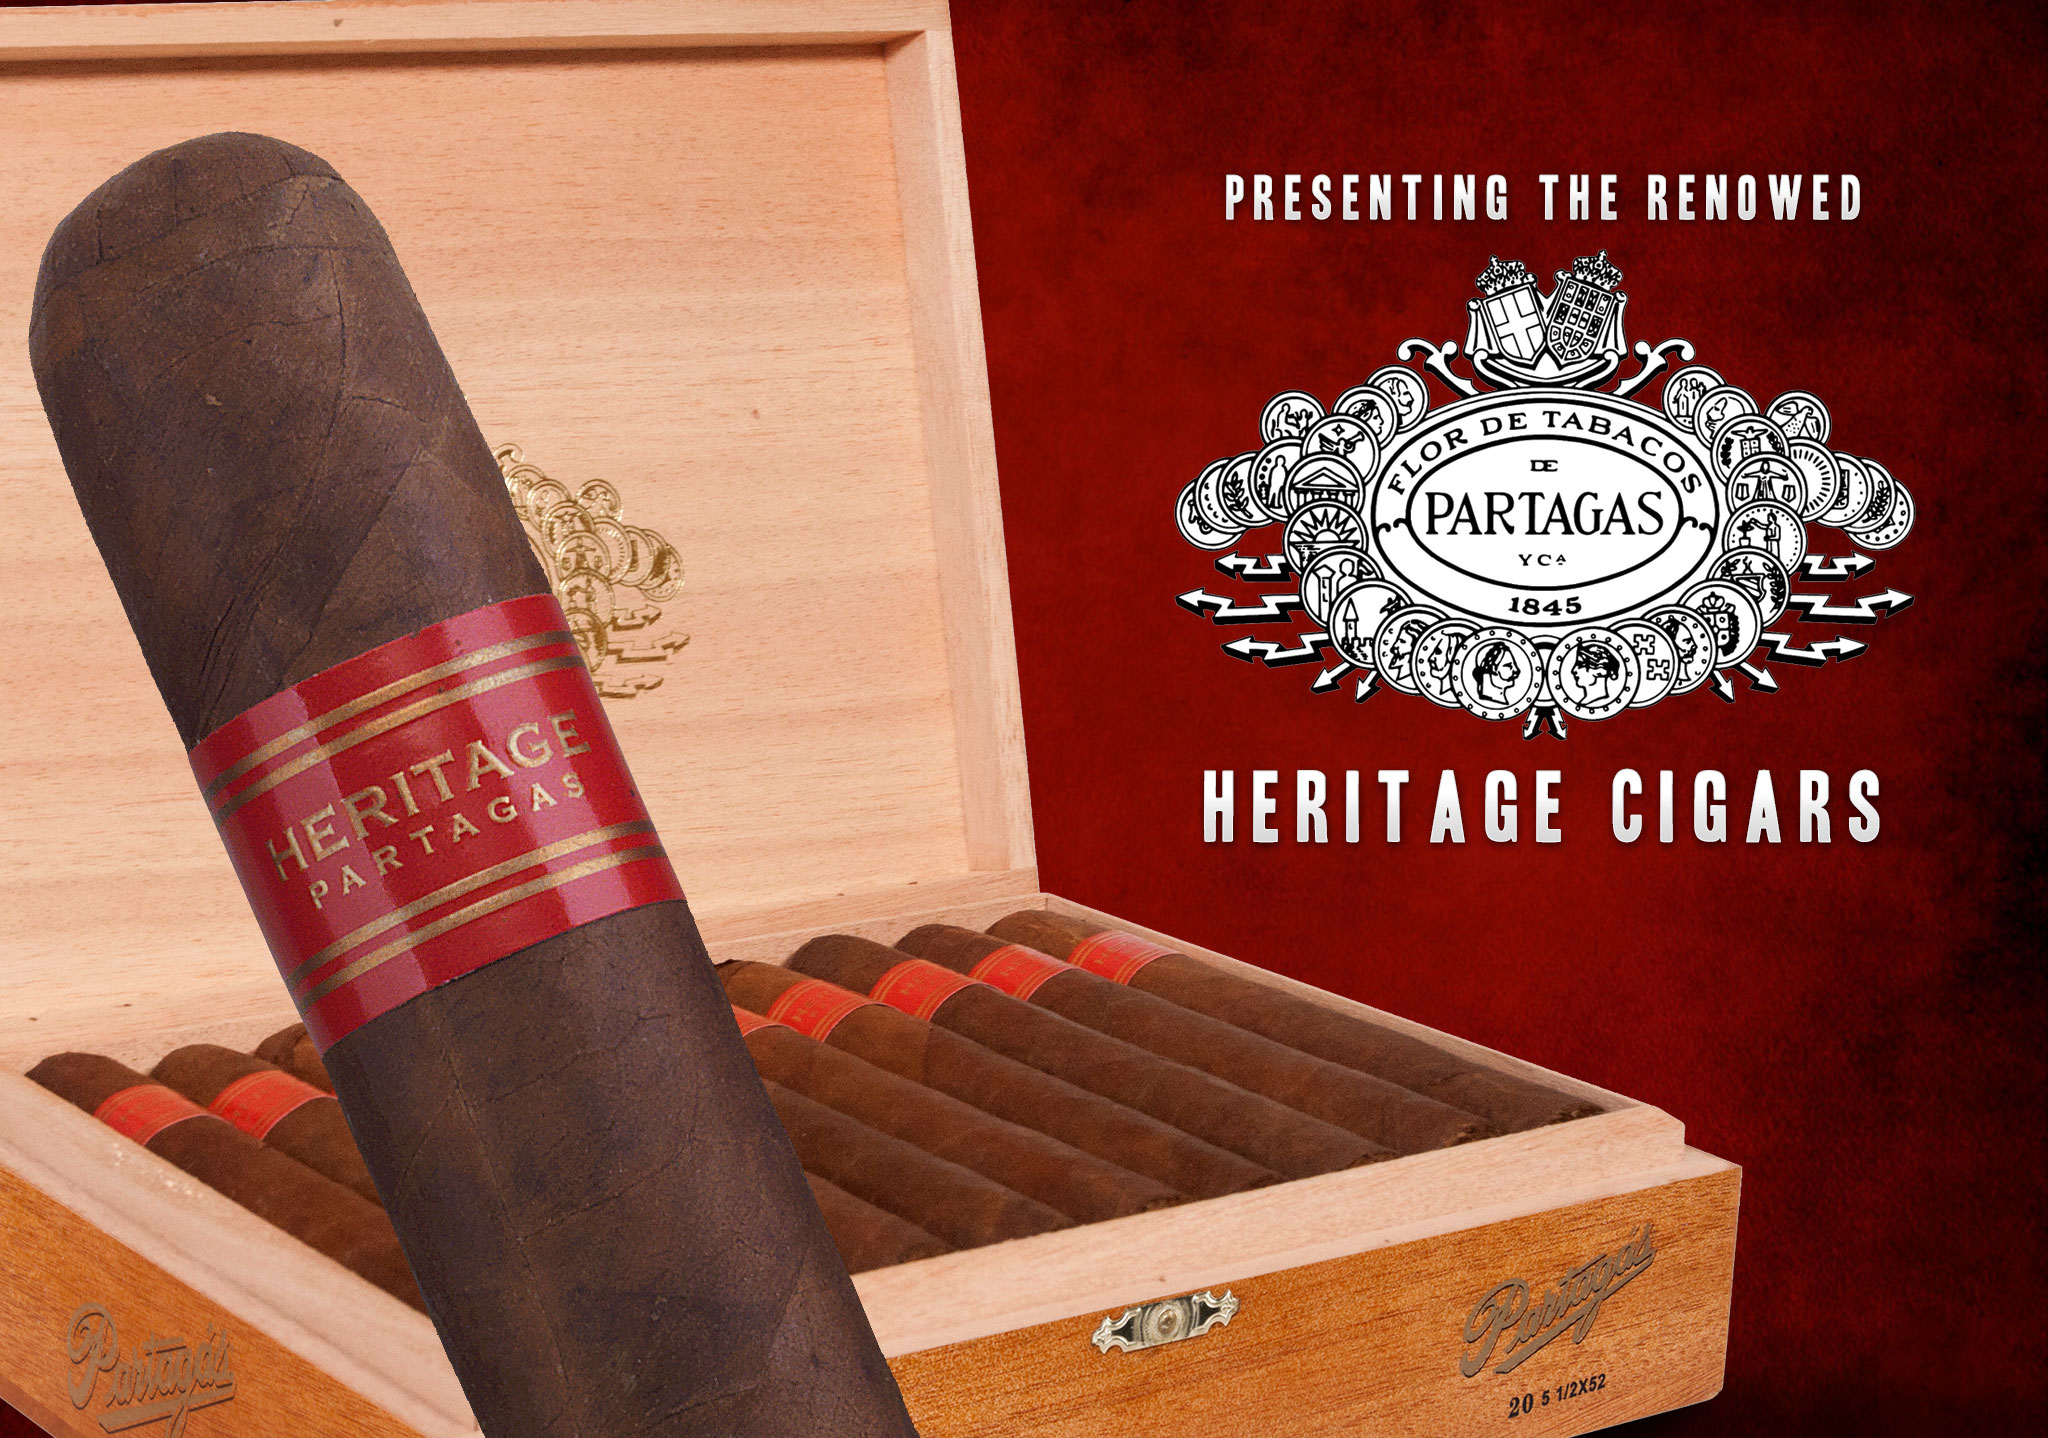 Partagas Heritage Cigars Pay Tribute to Over 170 Years of Excellence